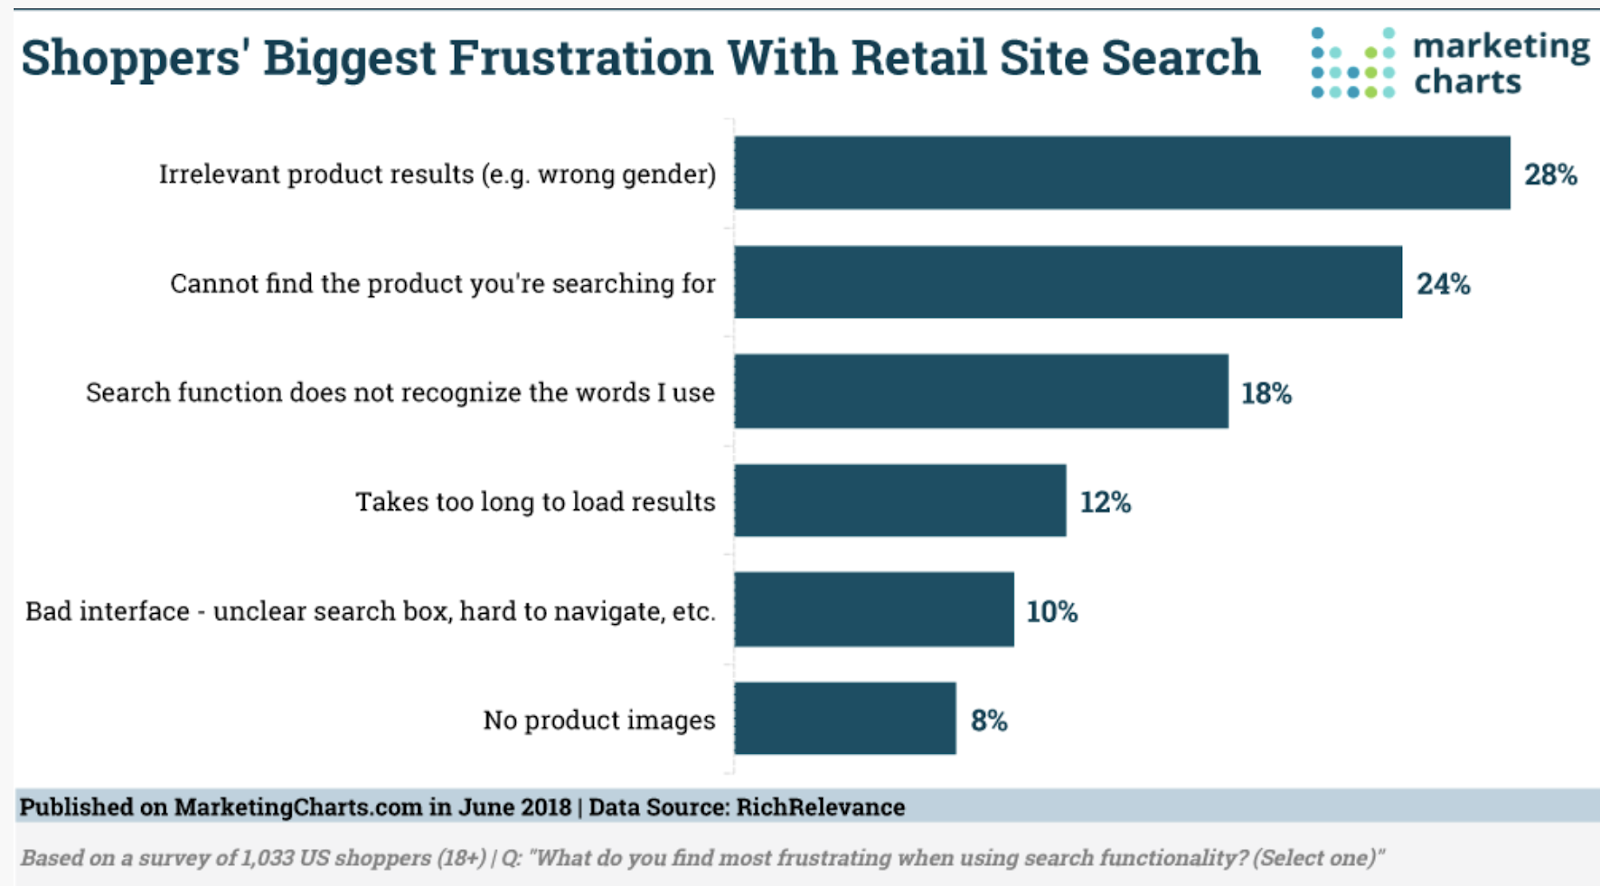 Shoppers' Biggest Frustration With Retail Site Search